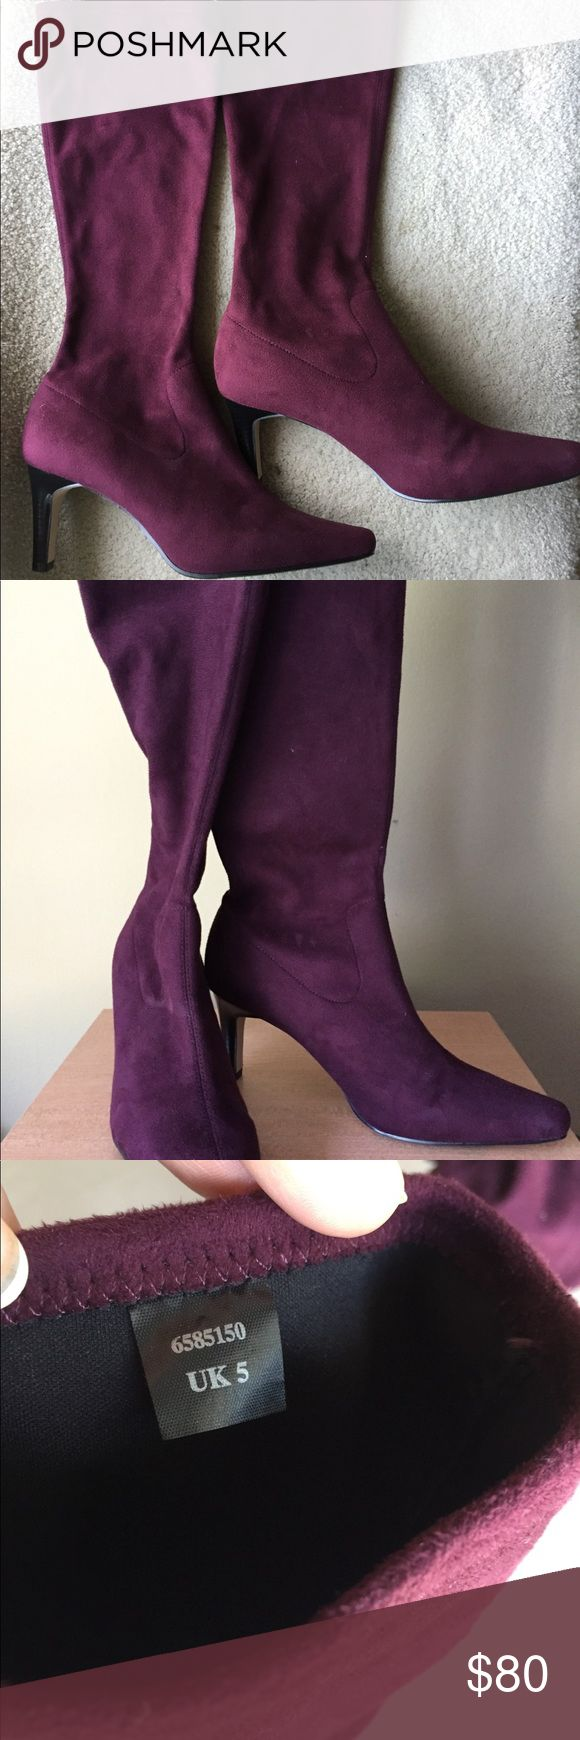 """Women's Suede Stretch Boots knee High Sz 38 M&S Sleek boots by Marks & Spencer Pre-own Like new. Never been used condition Mid heel Mid calf - tall Knee high Faux suede Pull on fastening 3"""" heel- Slim Dark maroon No box Imported  FIT & SIZING Size  EUR 38 . UK 5.  US 7 1/2- 8 ( For reference only. Sizes can varies between brands ) Heel 3"""" Length 9 1/2"""" Width   3""""   Please review all the photos as part of my description. Feel free to contact me for more detailed information, photos. Thank you…"""